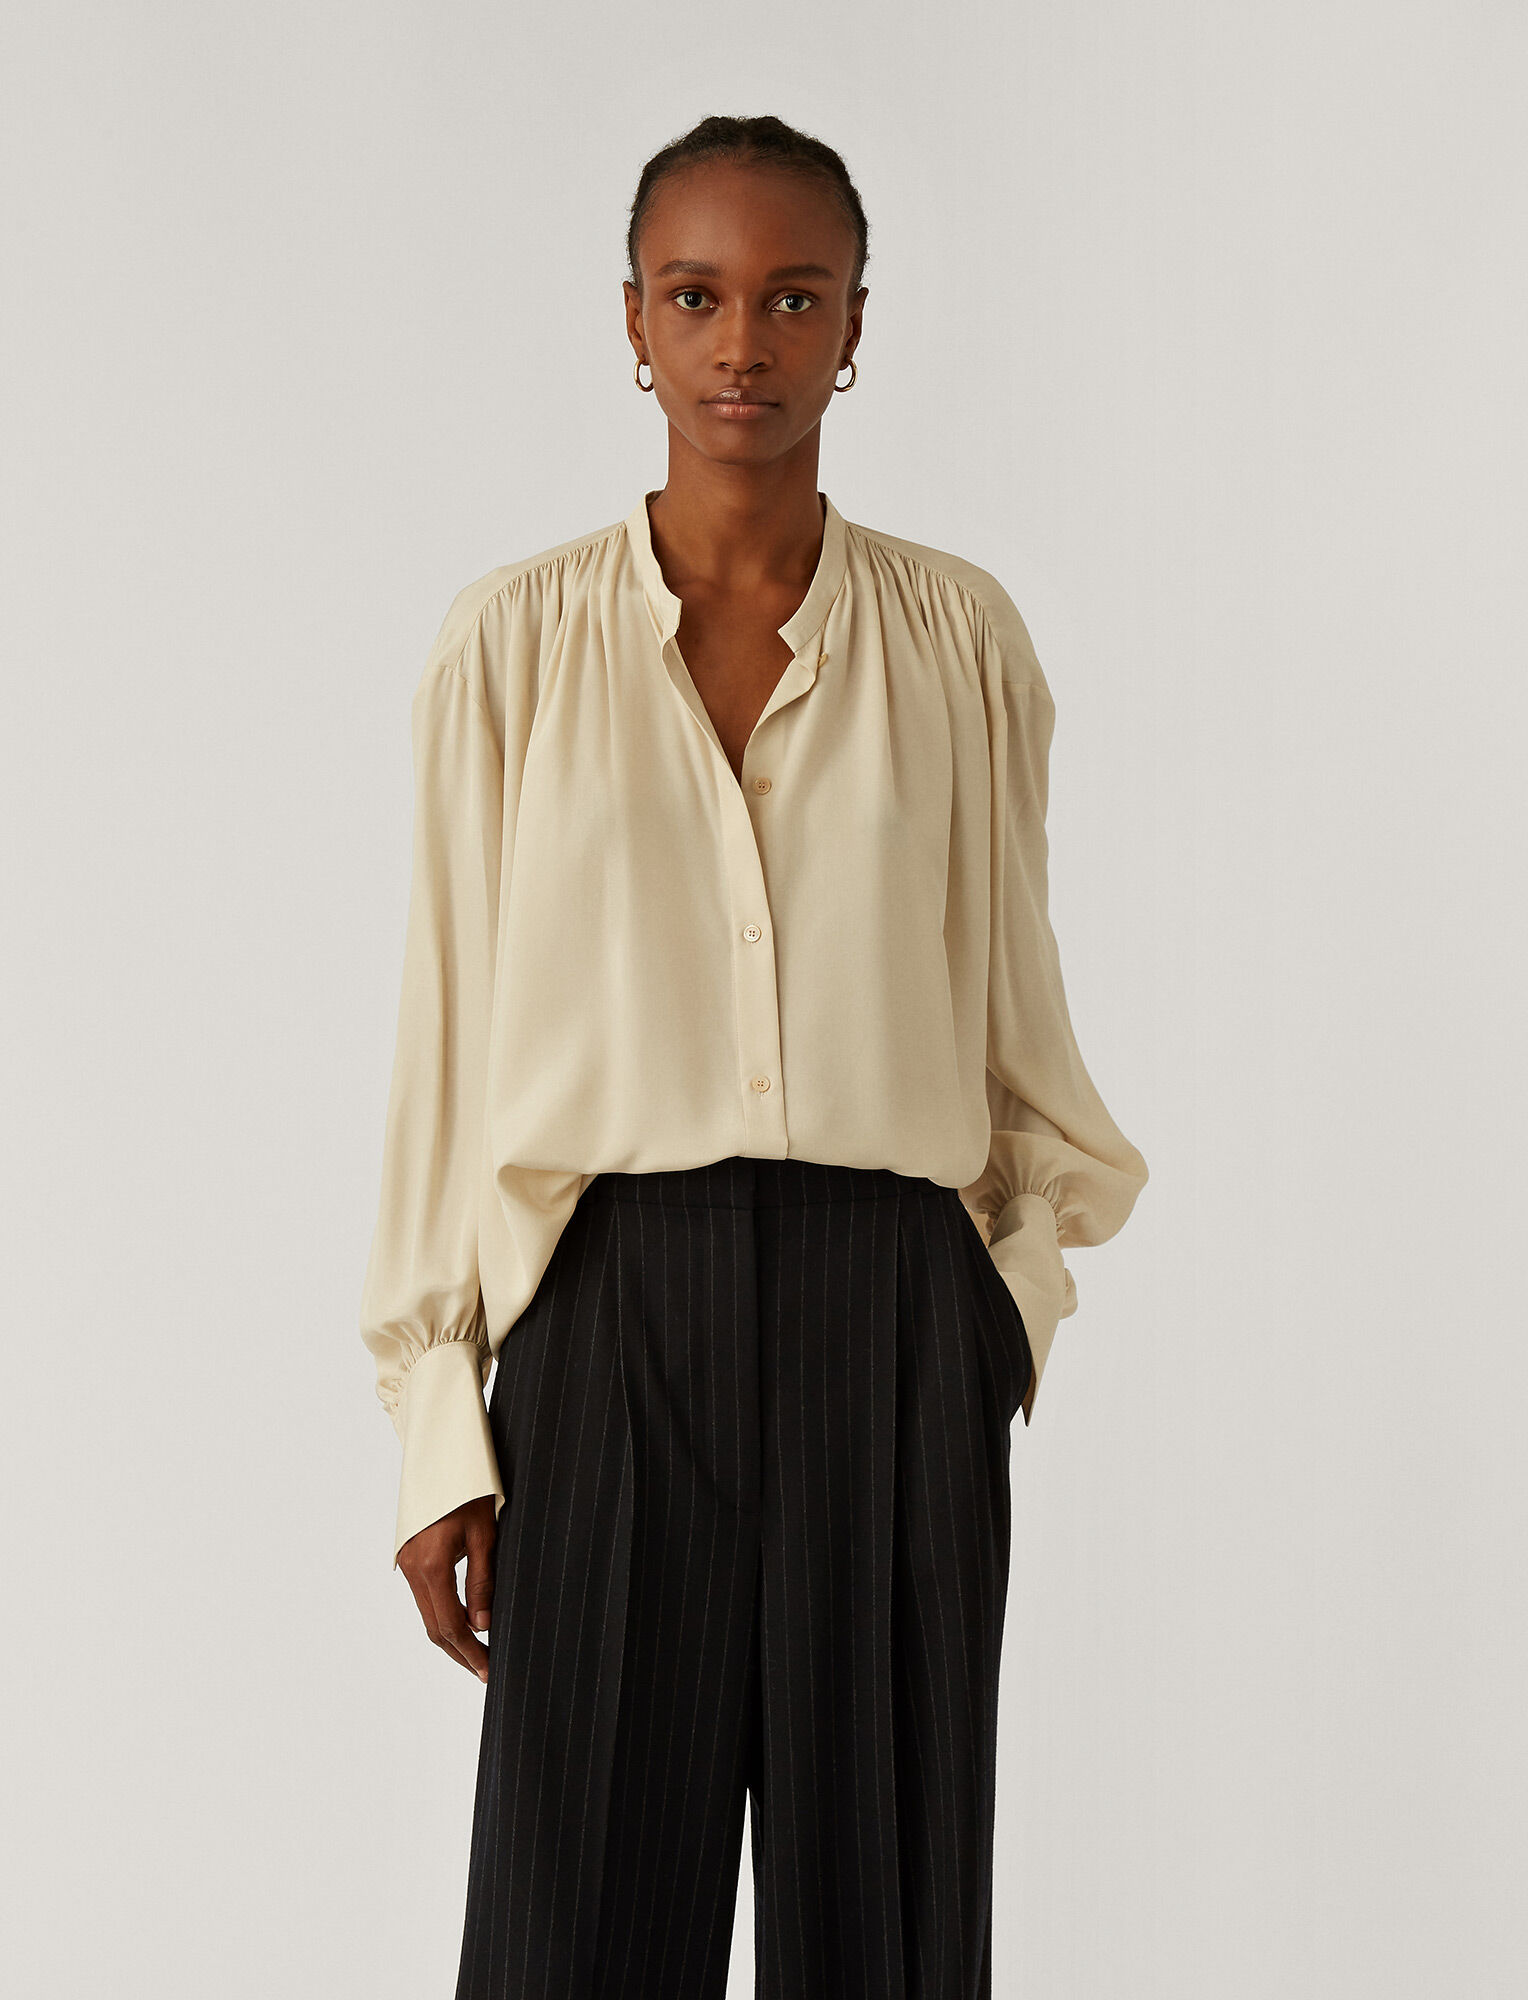 Joseph, Blanca Light Silk Blouse, in Marble